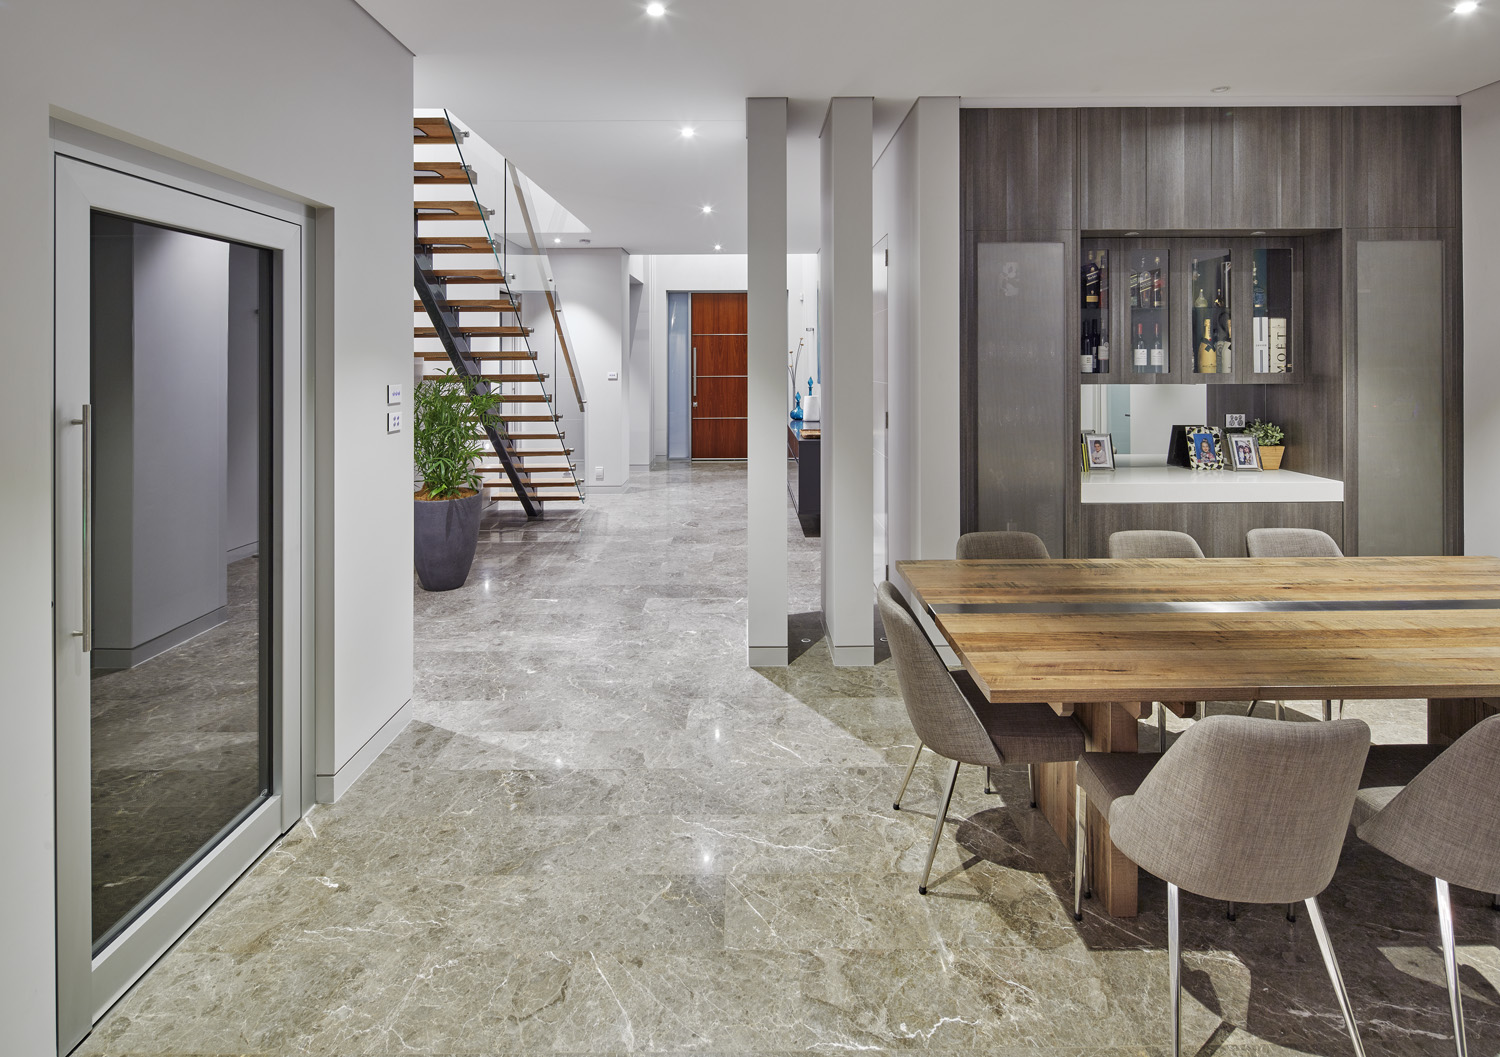 The open-plan layout of the home creates a spacious atmosphere